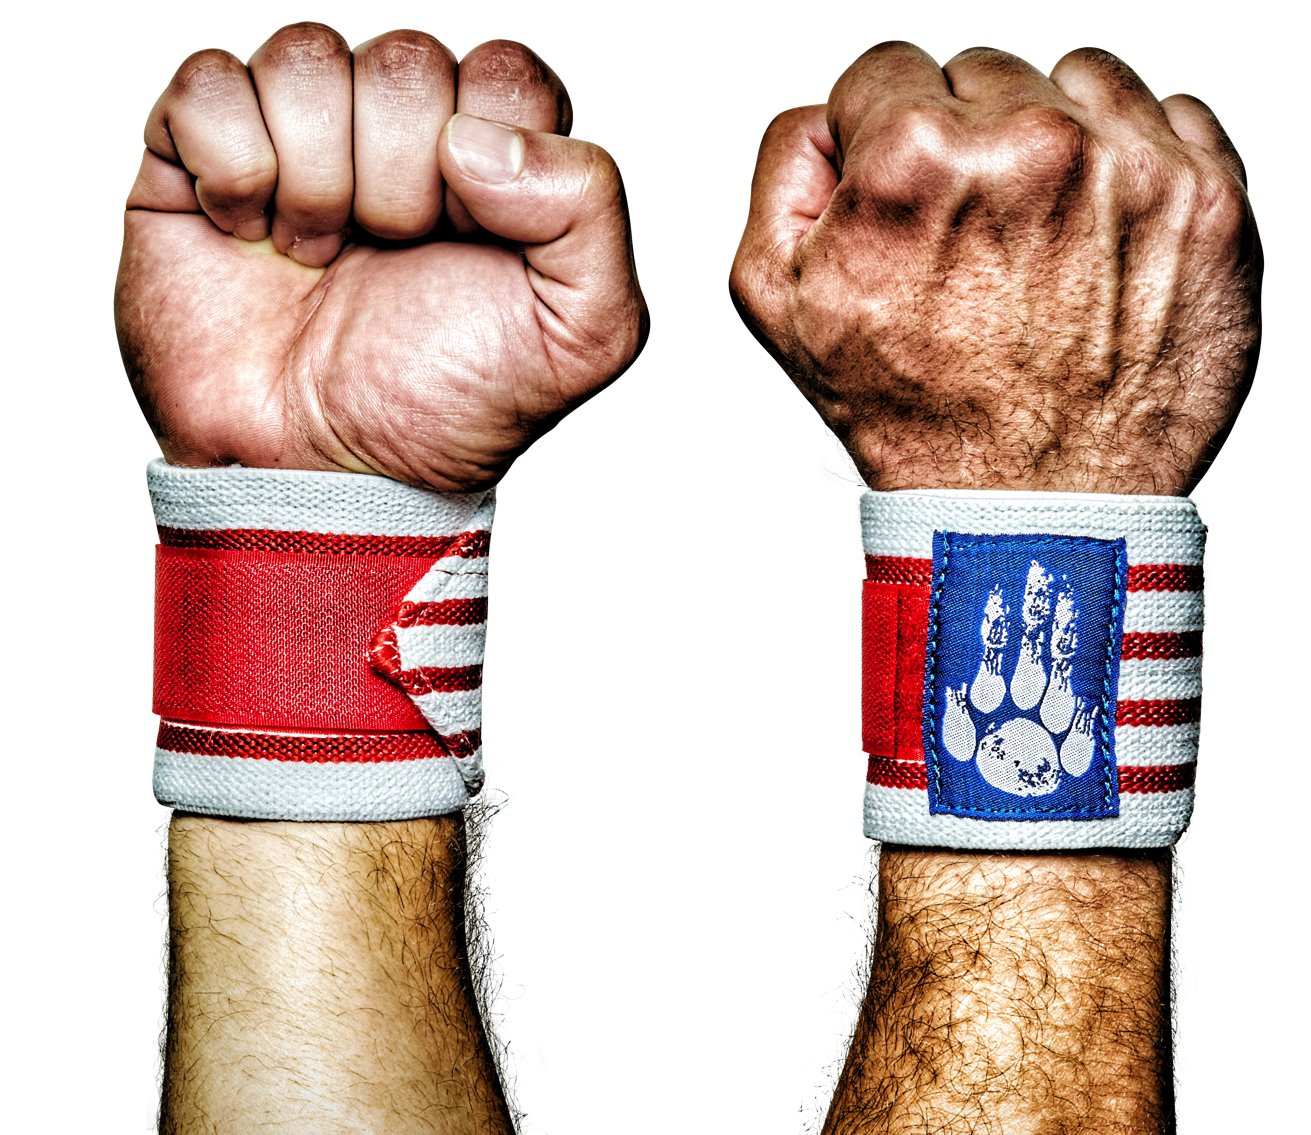 MANIMAL: The Best Weightlifting Straps with Superior Wrist Support, 1 Wrist Wraps Trusted by Professional Powerlifting, Strongman, Crossfit and Olympic Athletes - Old Glory